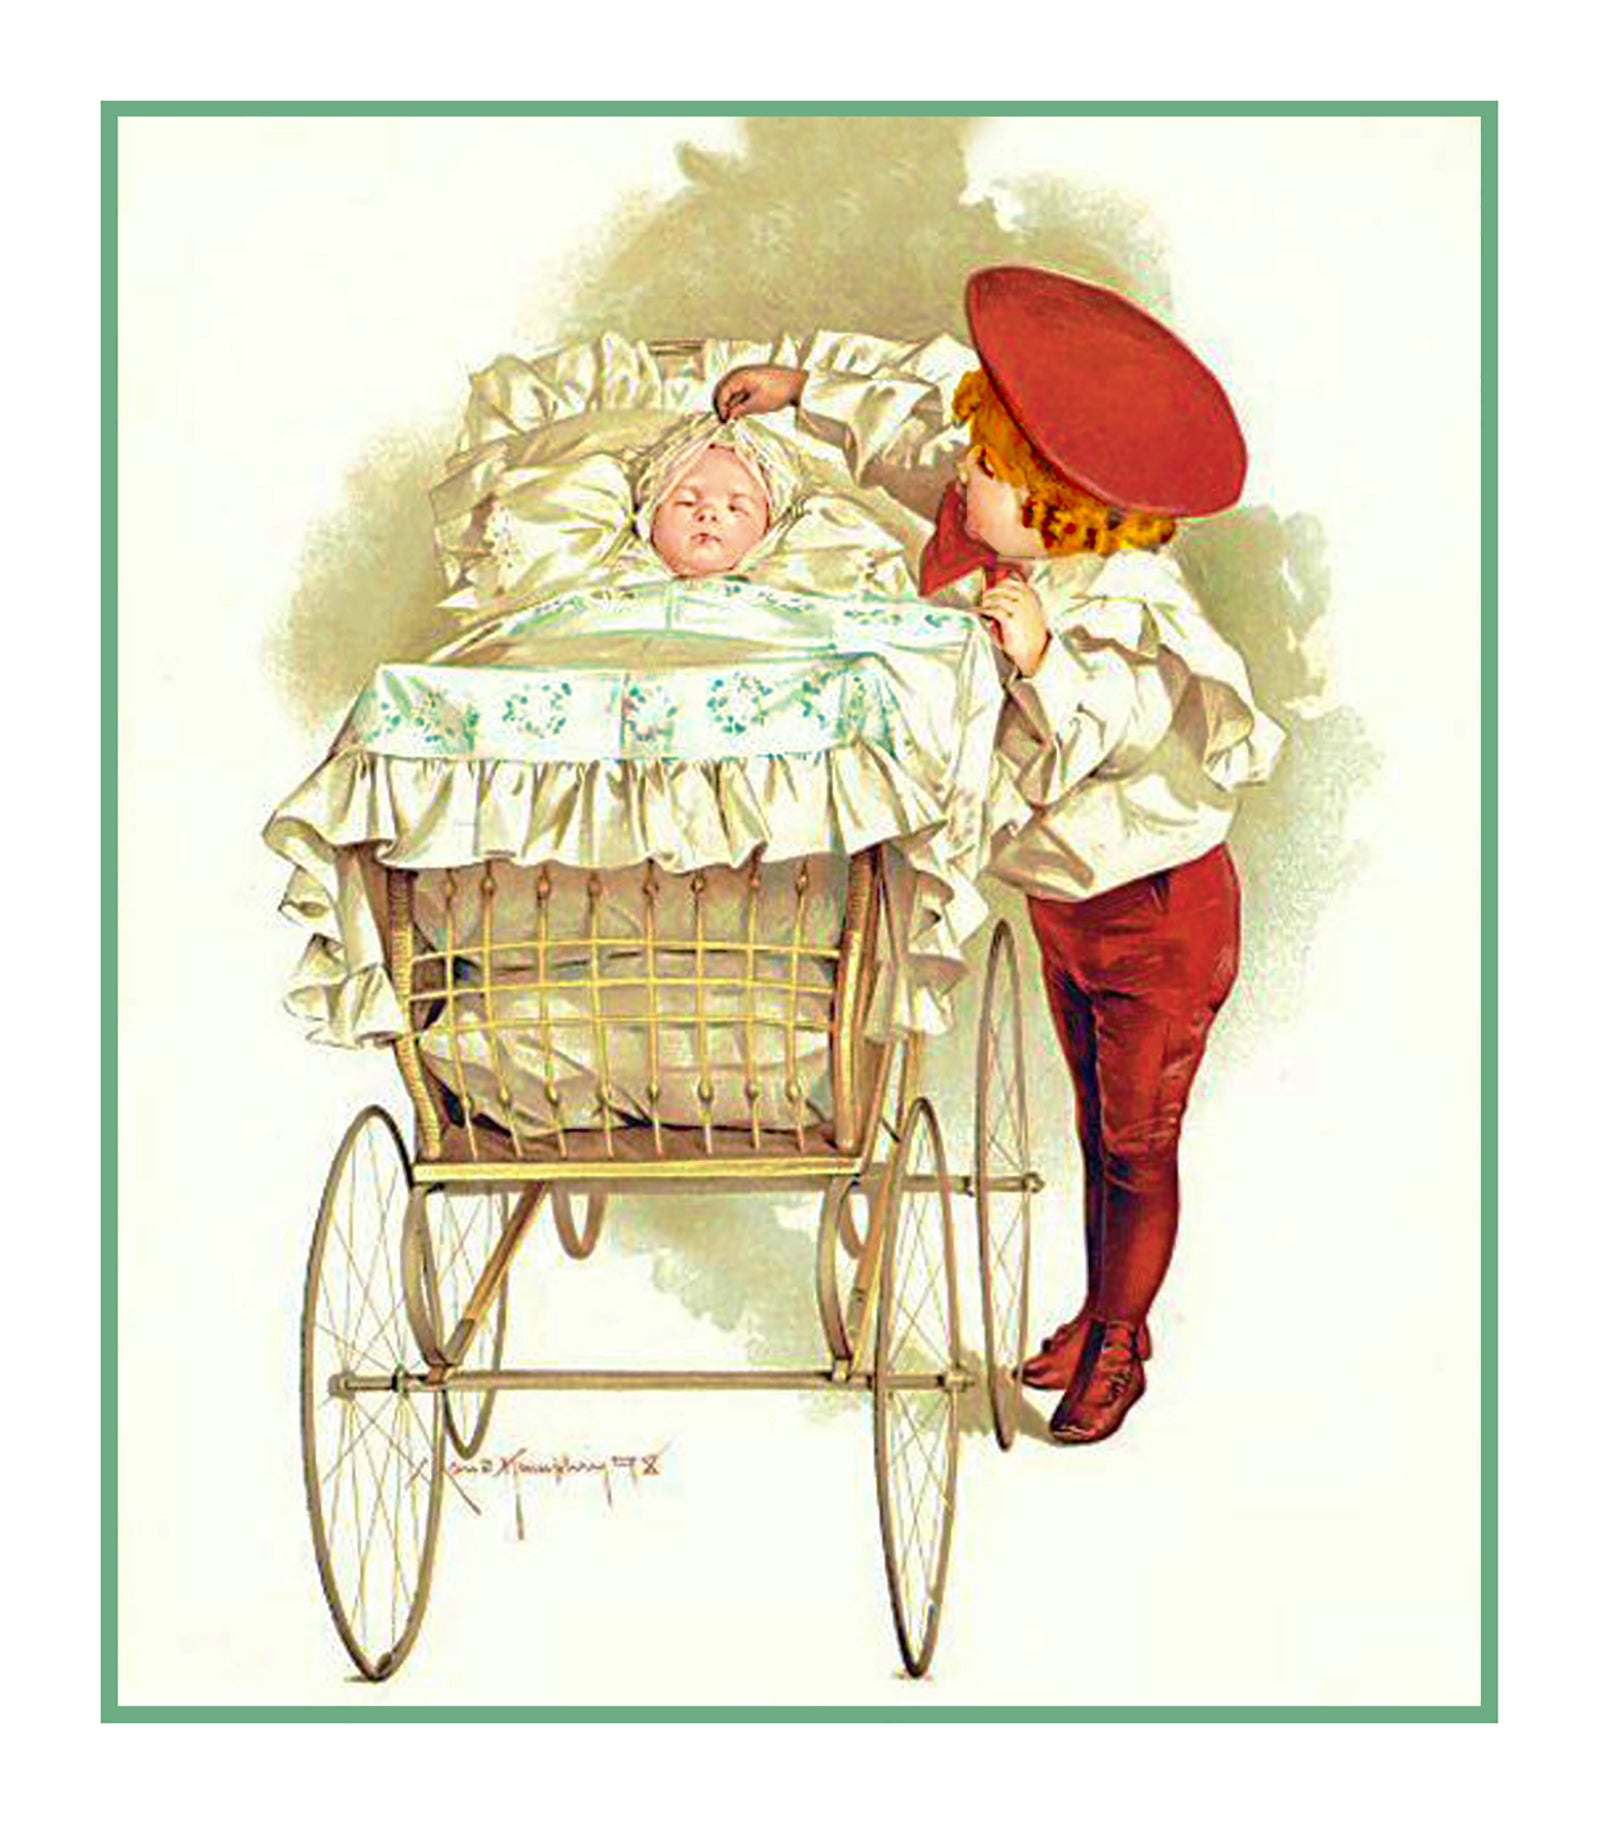 Maud Humphrey Bogart/'s Boy Baby Carriage Counted Cross Stitch Chart Pattern